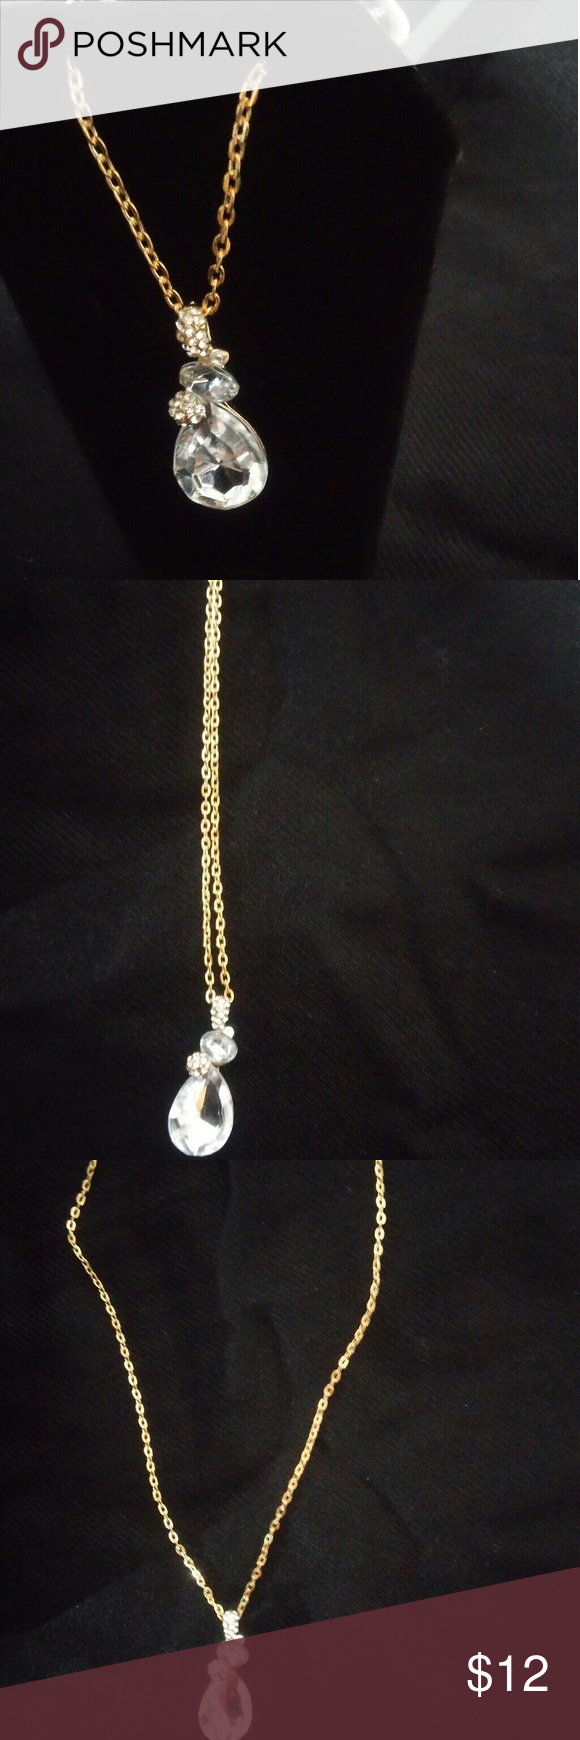 Beautiful large diamond necklace surrounded by smaller diamonds